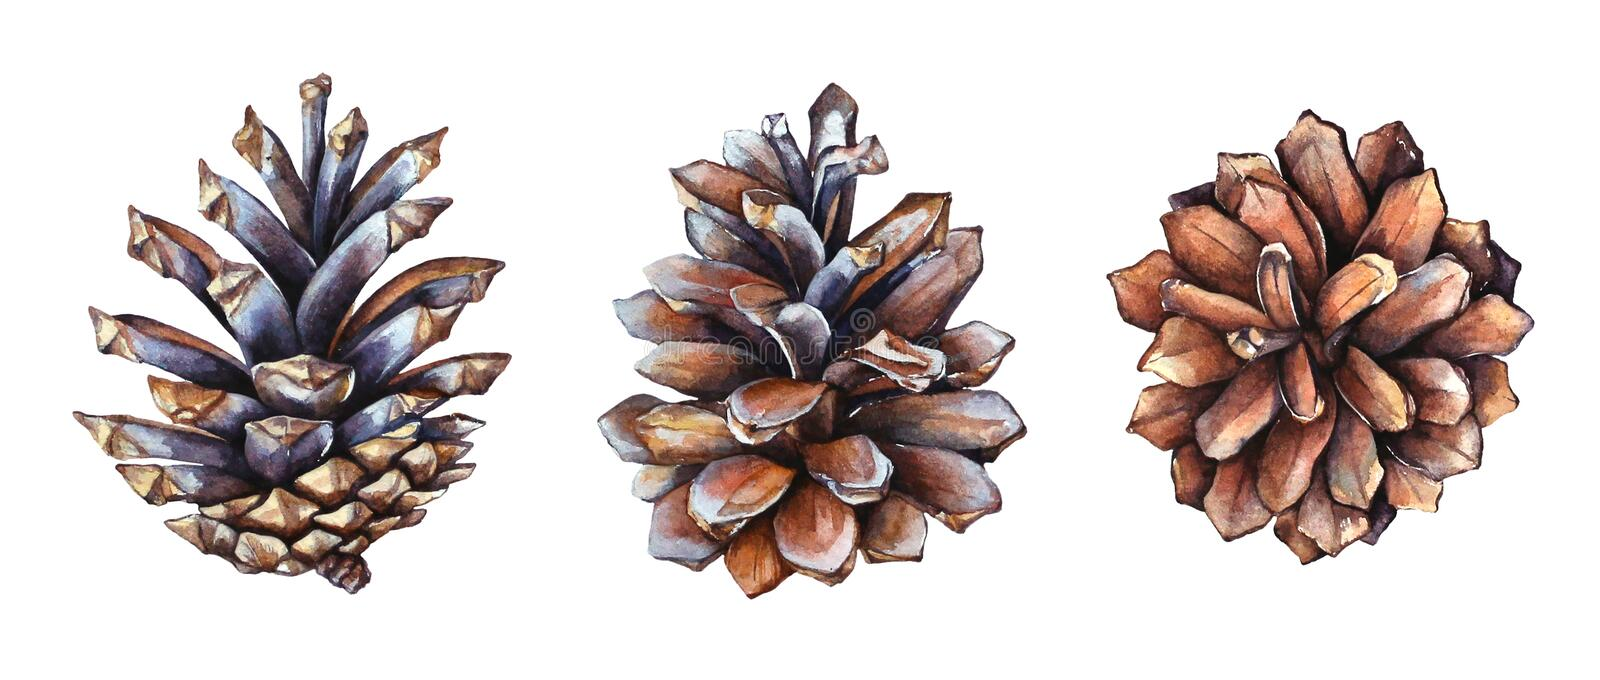 Collection of realistic watercolor illustrations of the pine cones on white background. Watercolor realistic illustration of the pine cones from side view and royalty free illustration